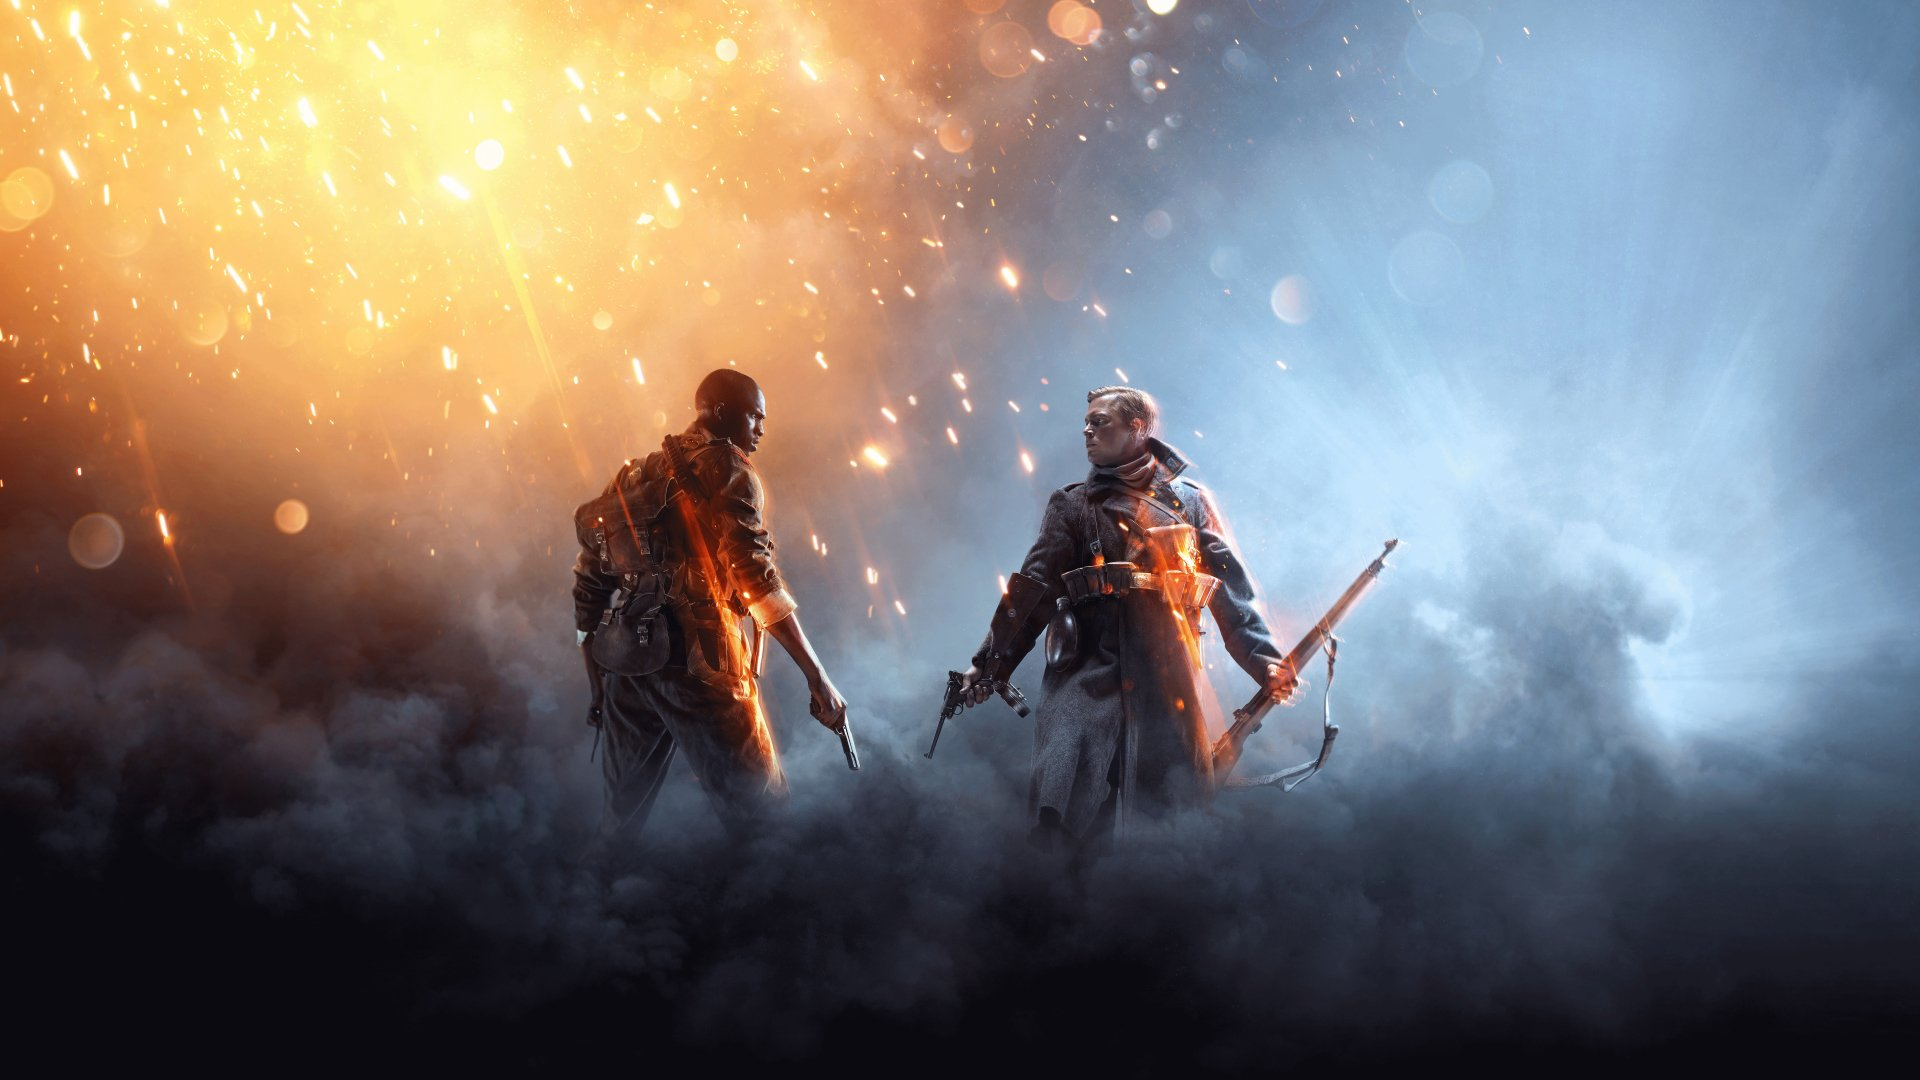 Battlefield 1 Wallpapers in Ultra HD | 4K